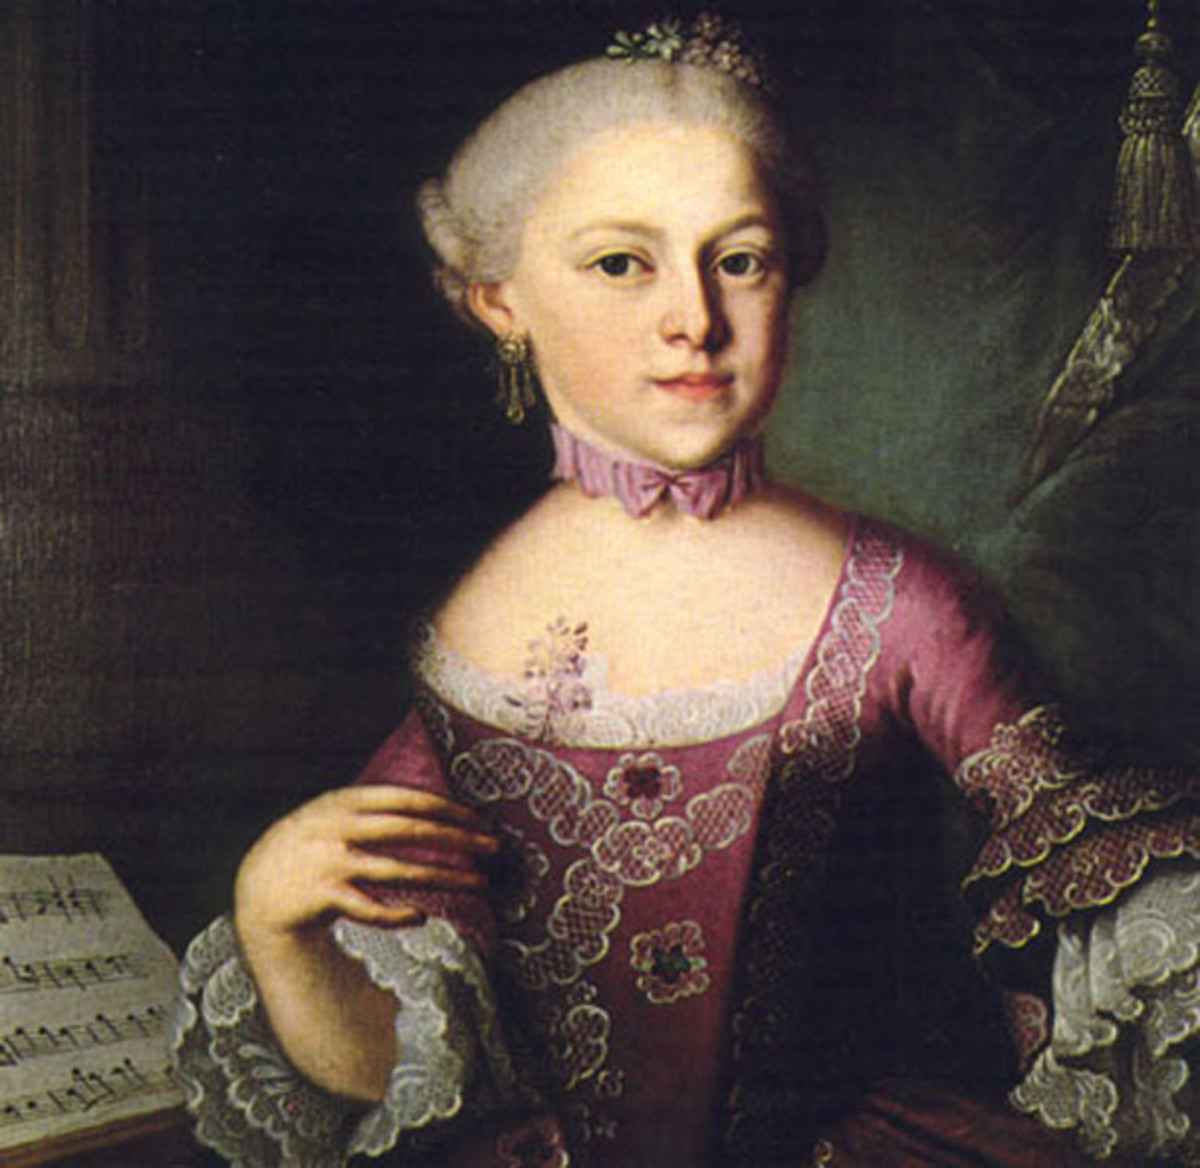 Painting of Maria Anna Mozart